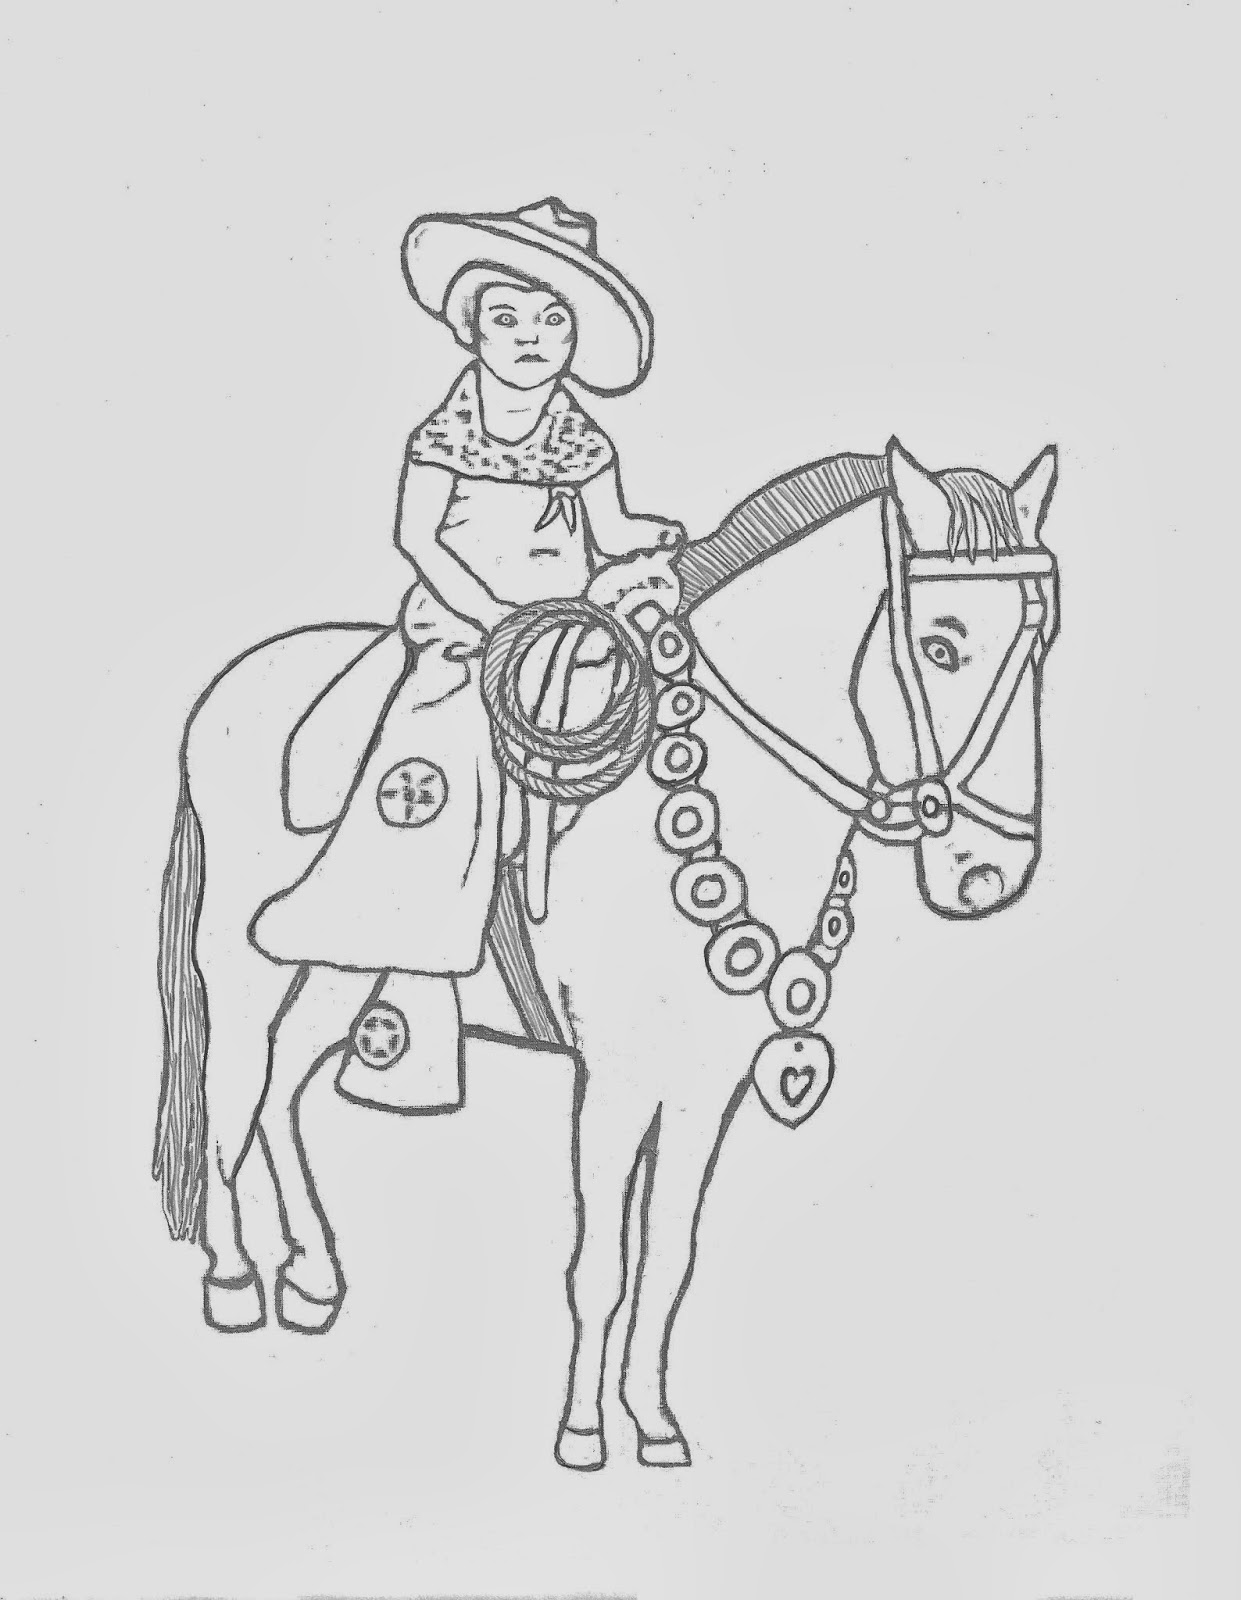 Vintage Cowgirl On Horse Coloring Page further Imagenes De Hadas Para Tatuajes TLLrd5nx5 furthermore Stars Tattoo Design 79008483 besides Envelopes together with Vsmcilvanie wordpress. on free plastic canvas patterns